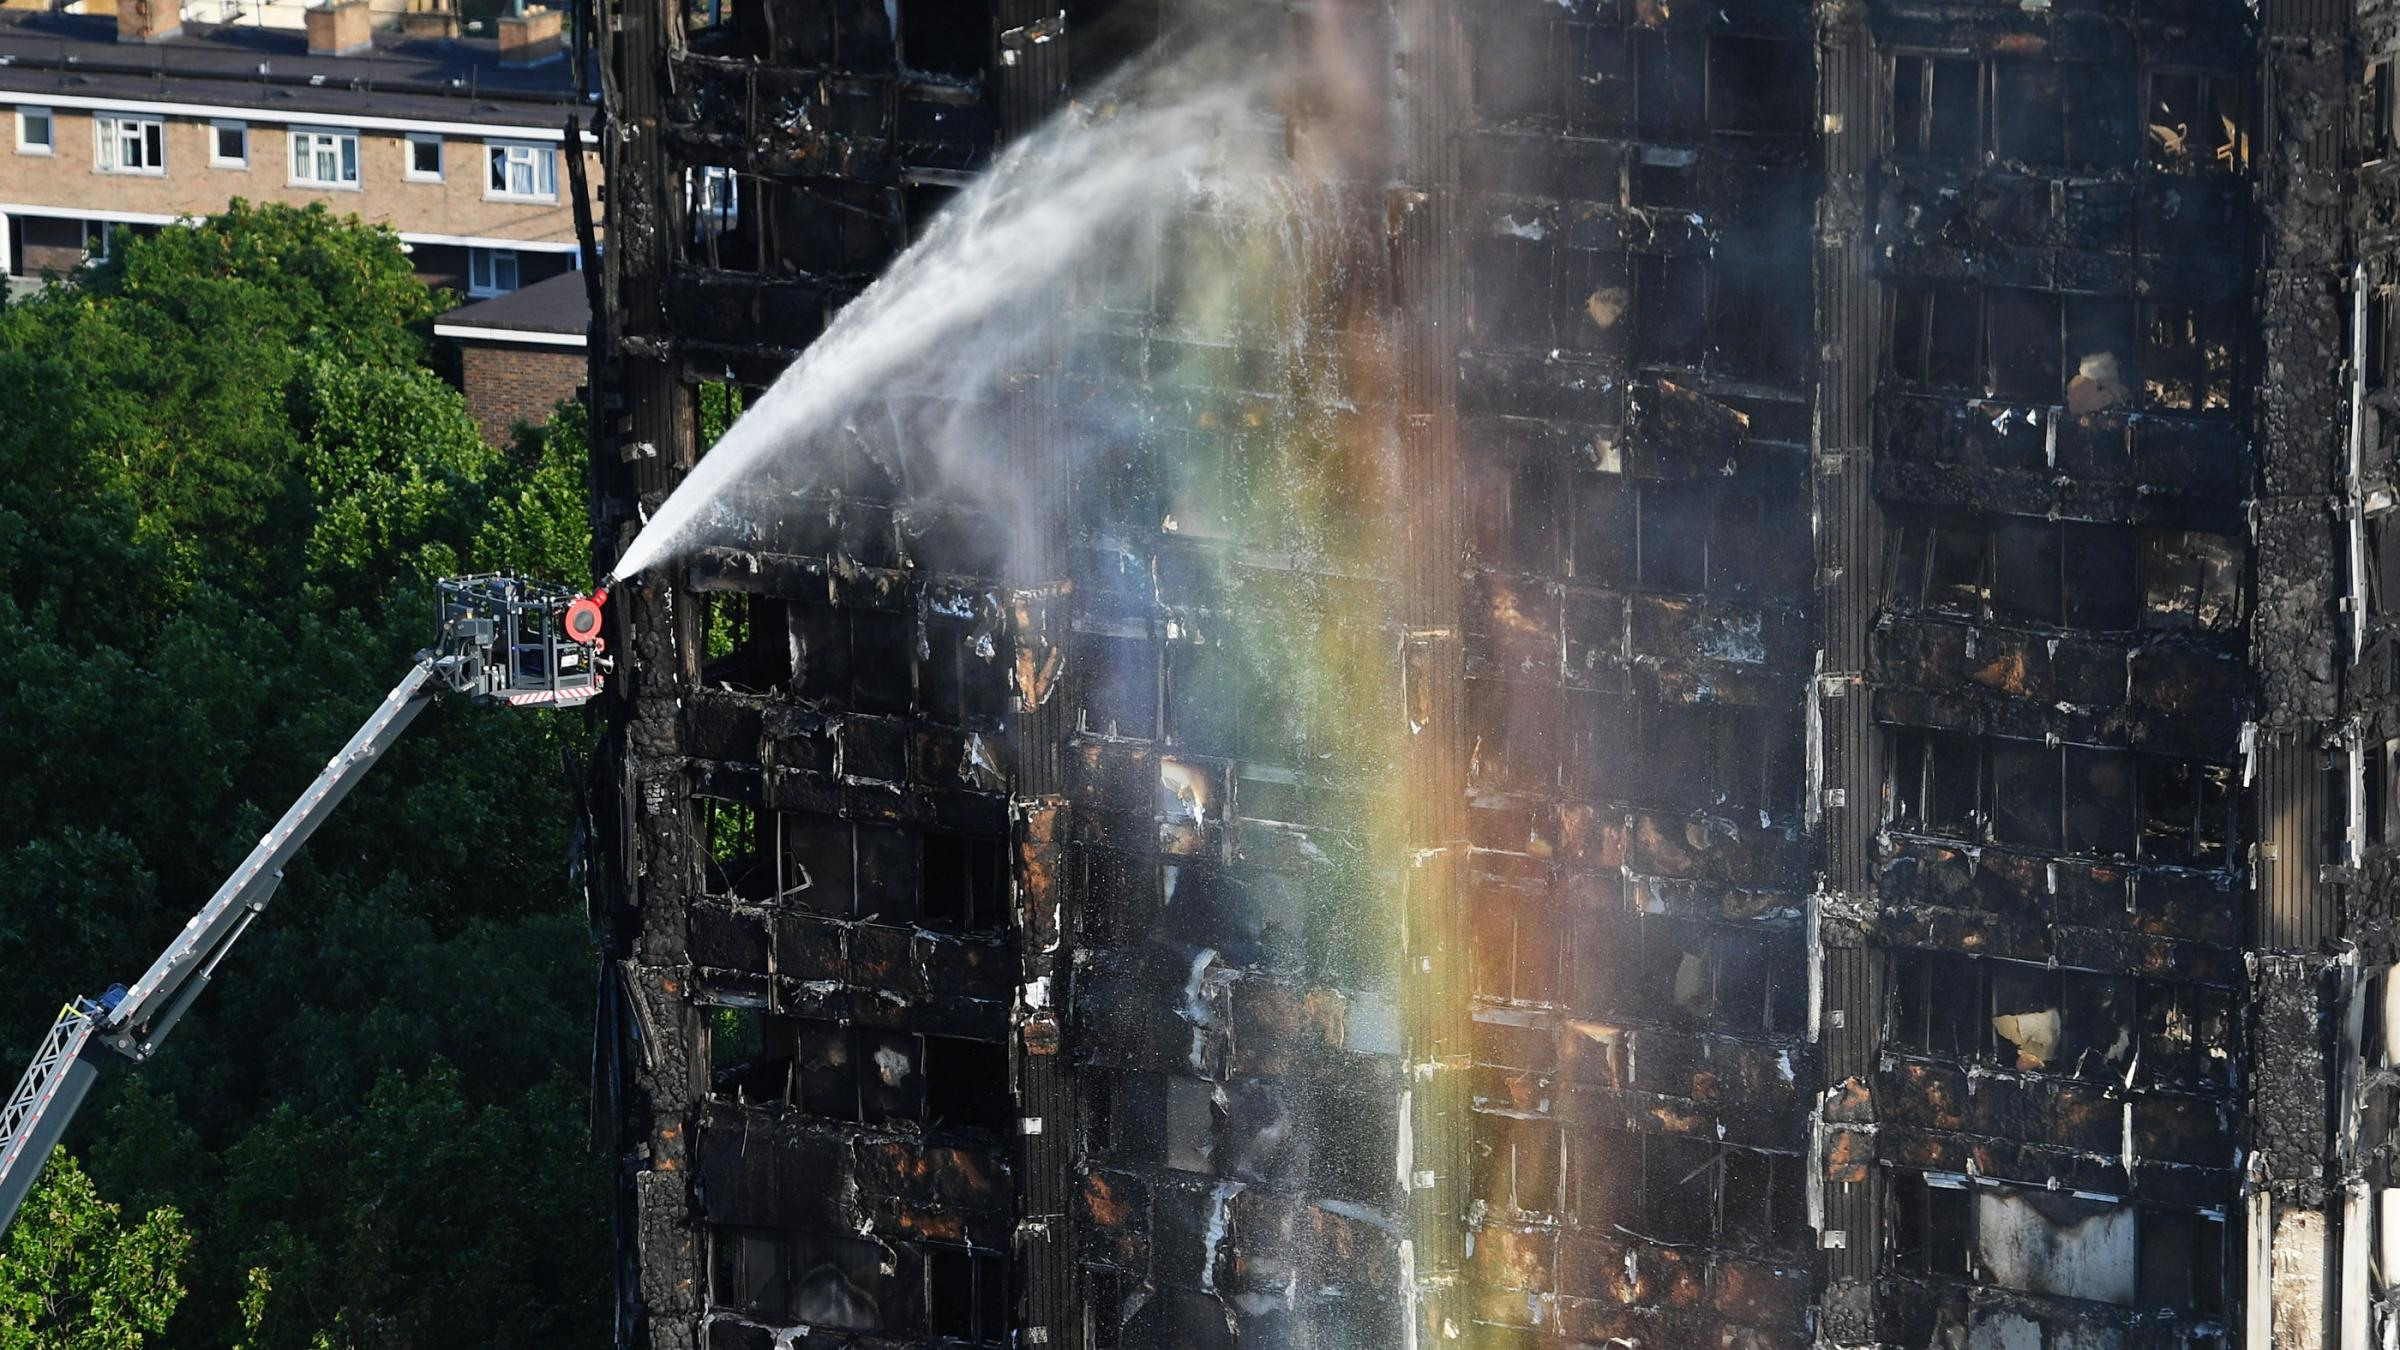 London police say death toll at 17 after Grenfell Tower fire